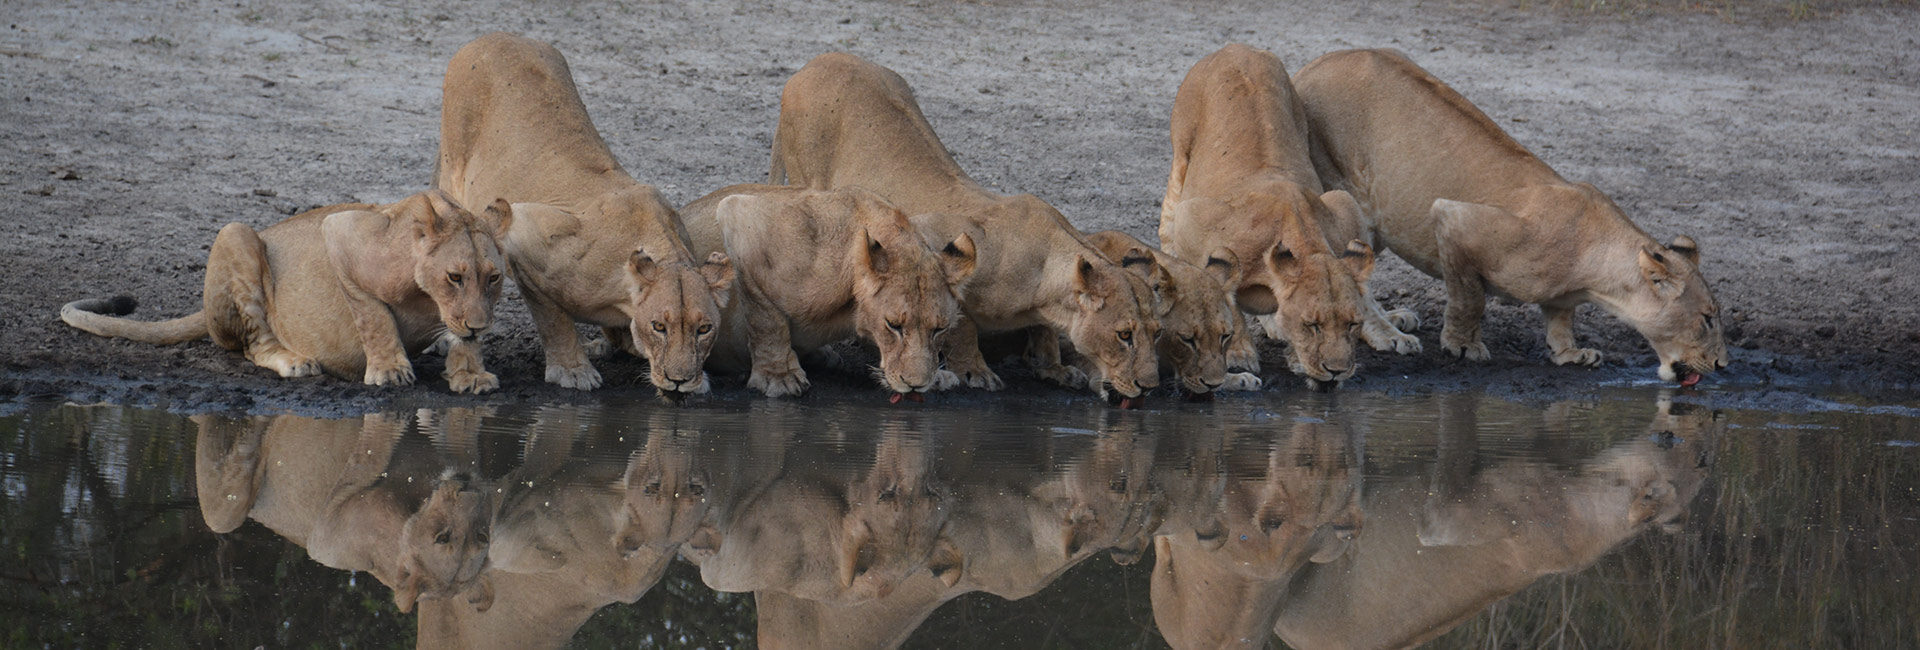 Once-in-a-lifetime Big Five encounters